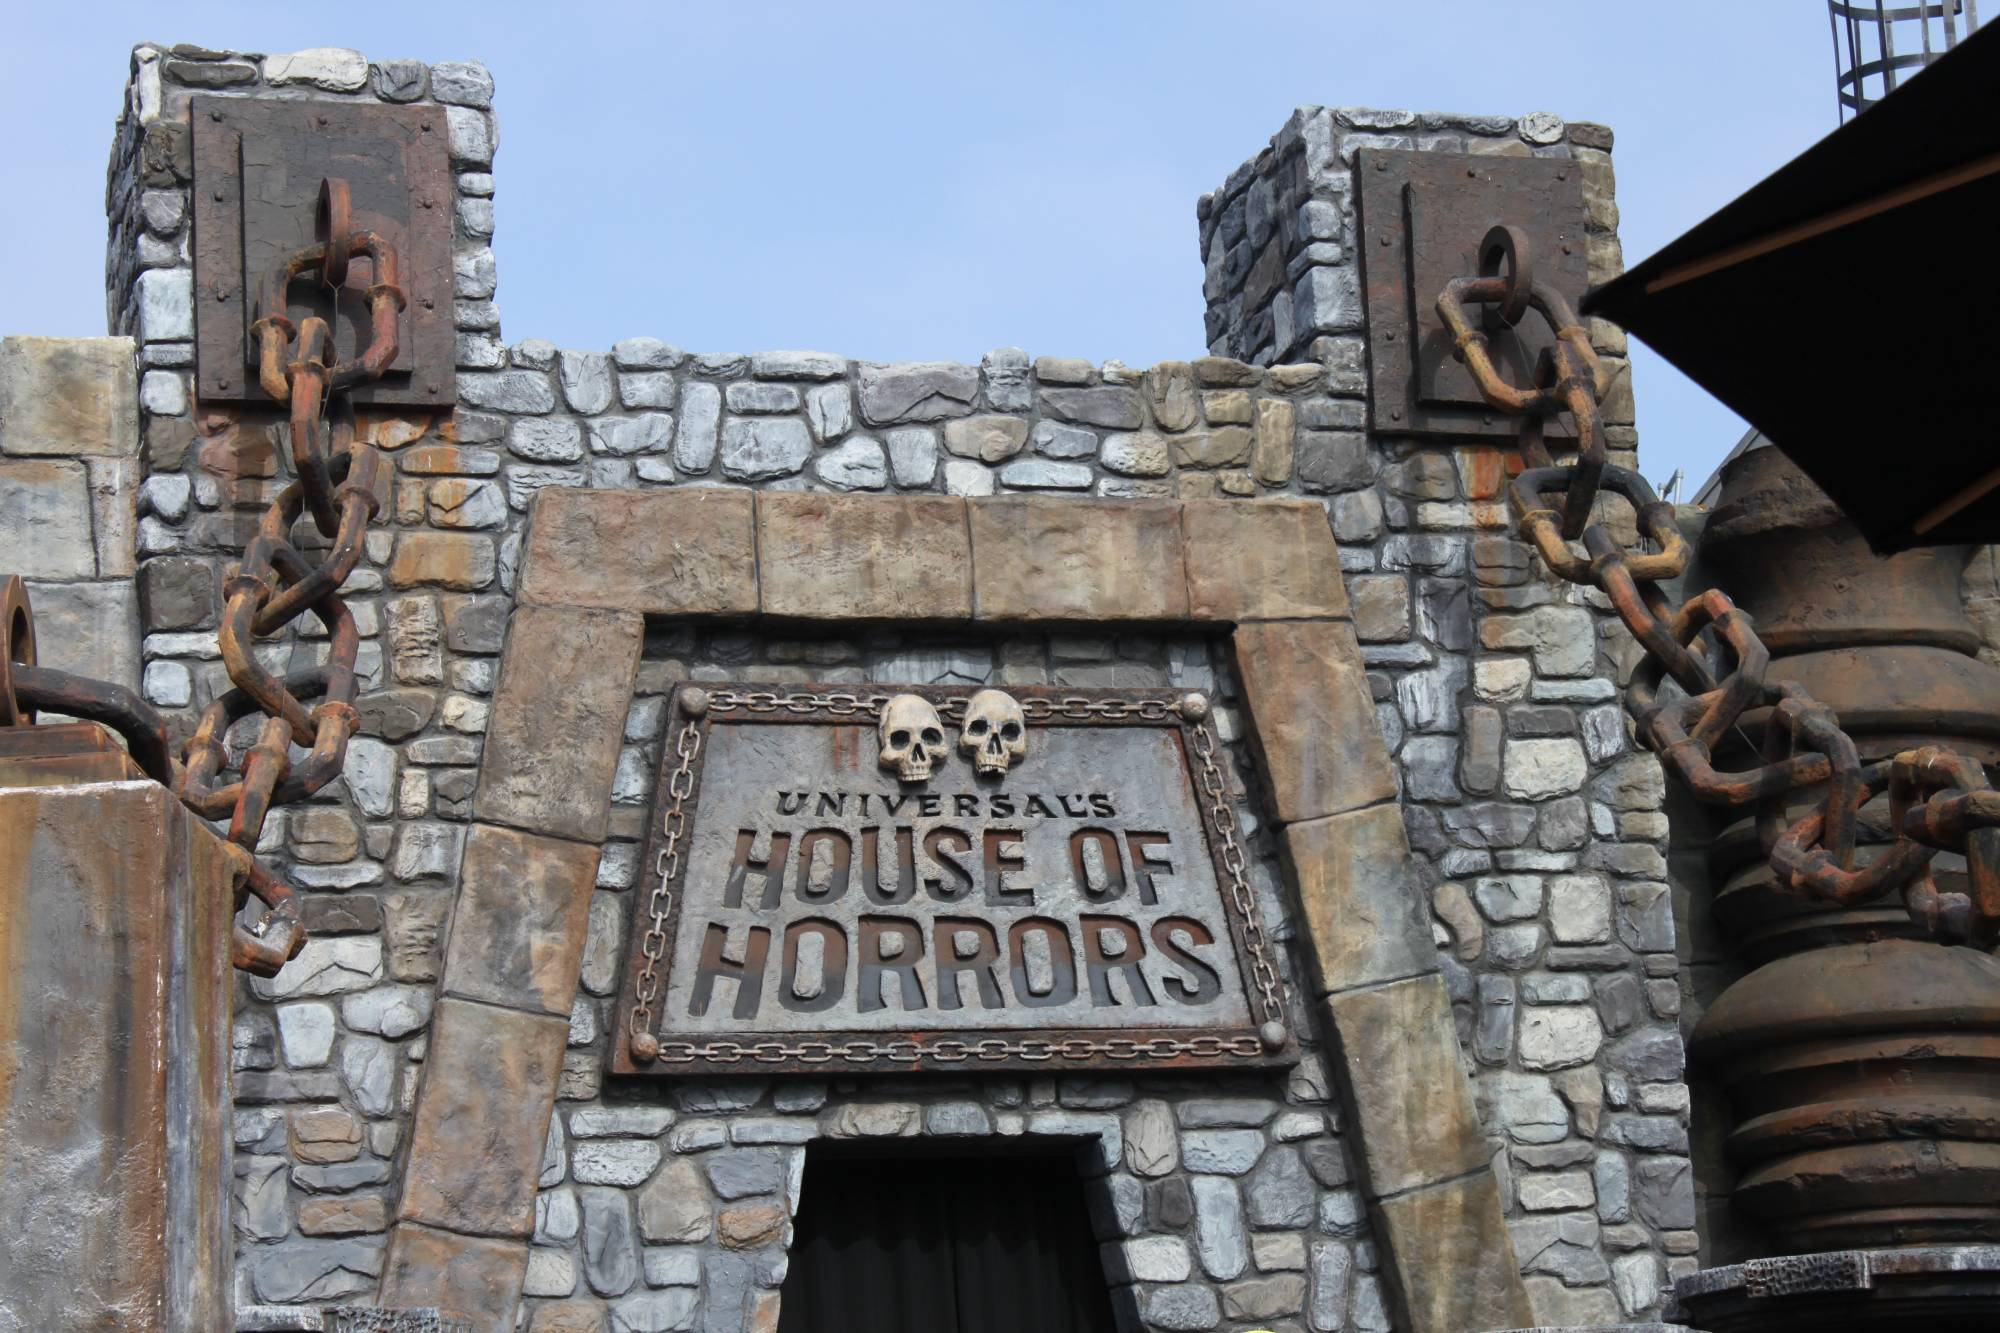 Universal Studios Hollywood - Universal's House of Horrors